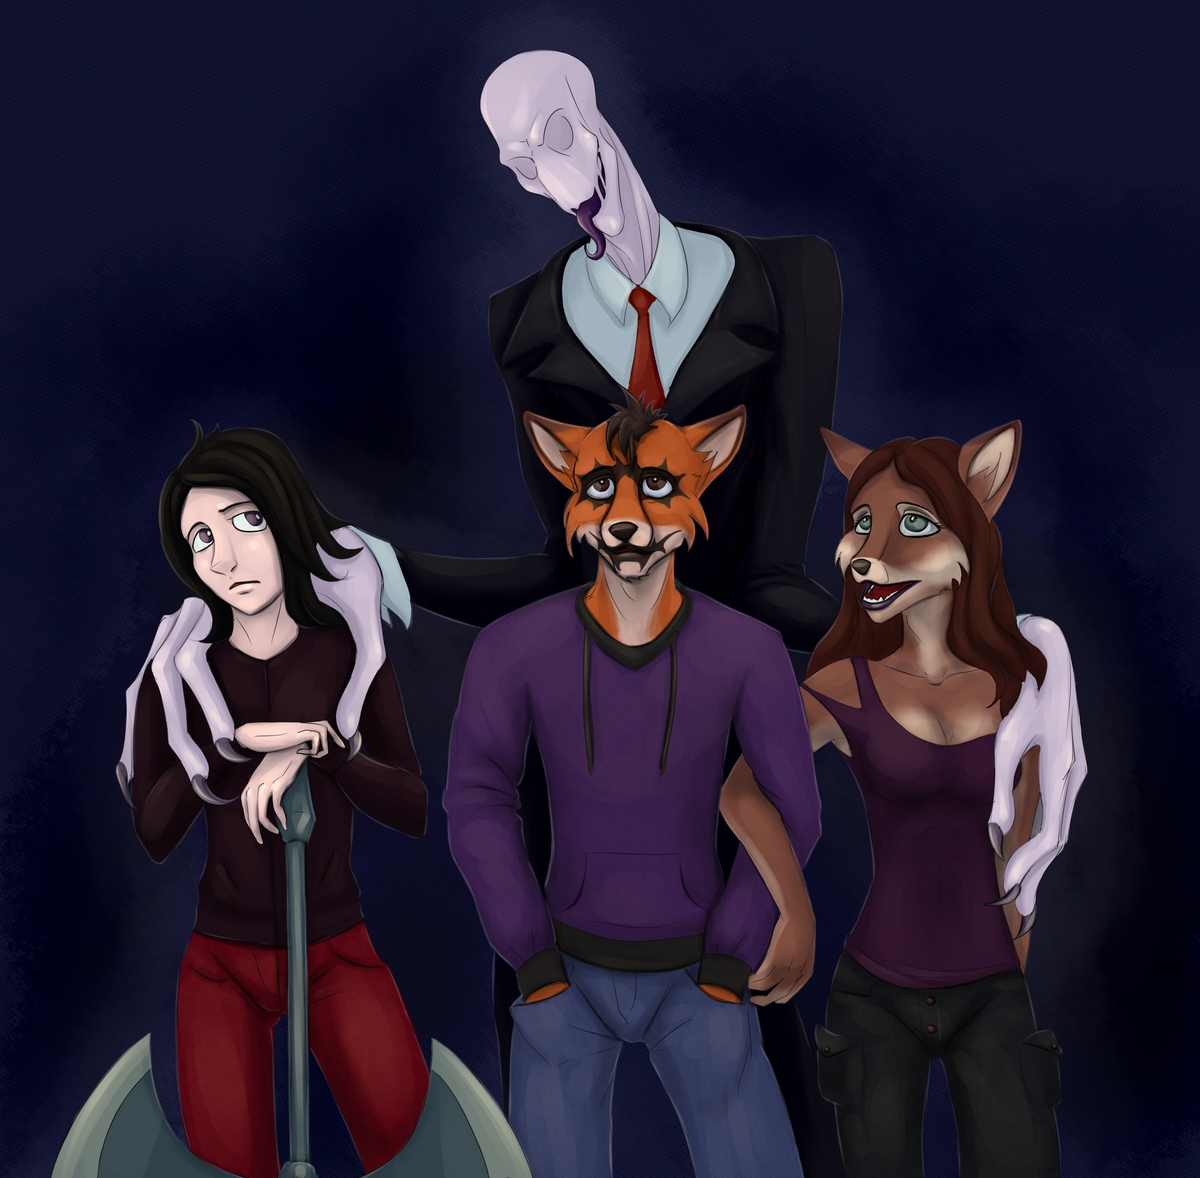 Slenderman and company